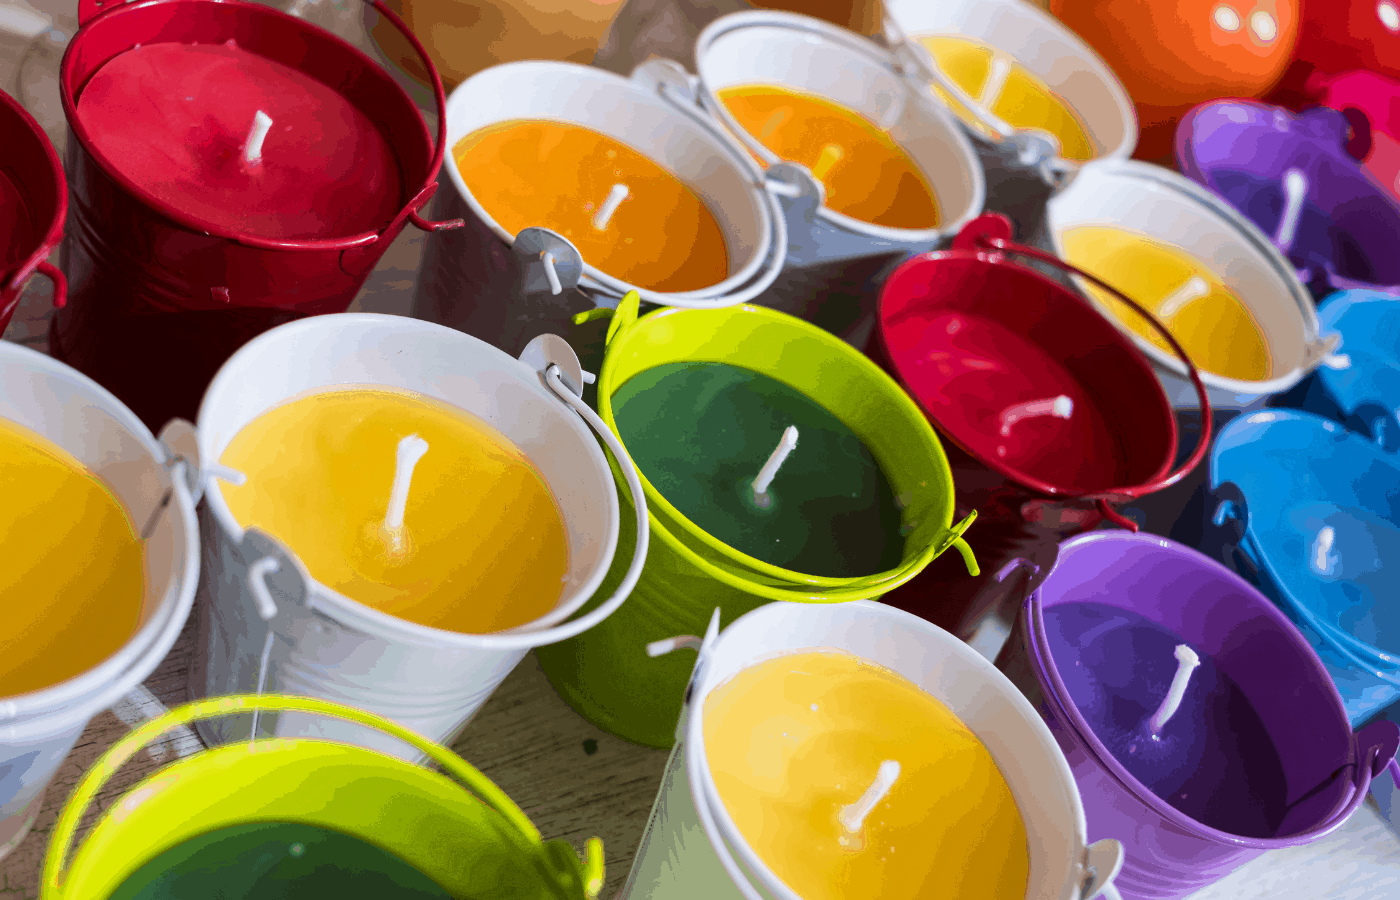 Can You Use Acrylic Paint in Candle Making